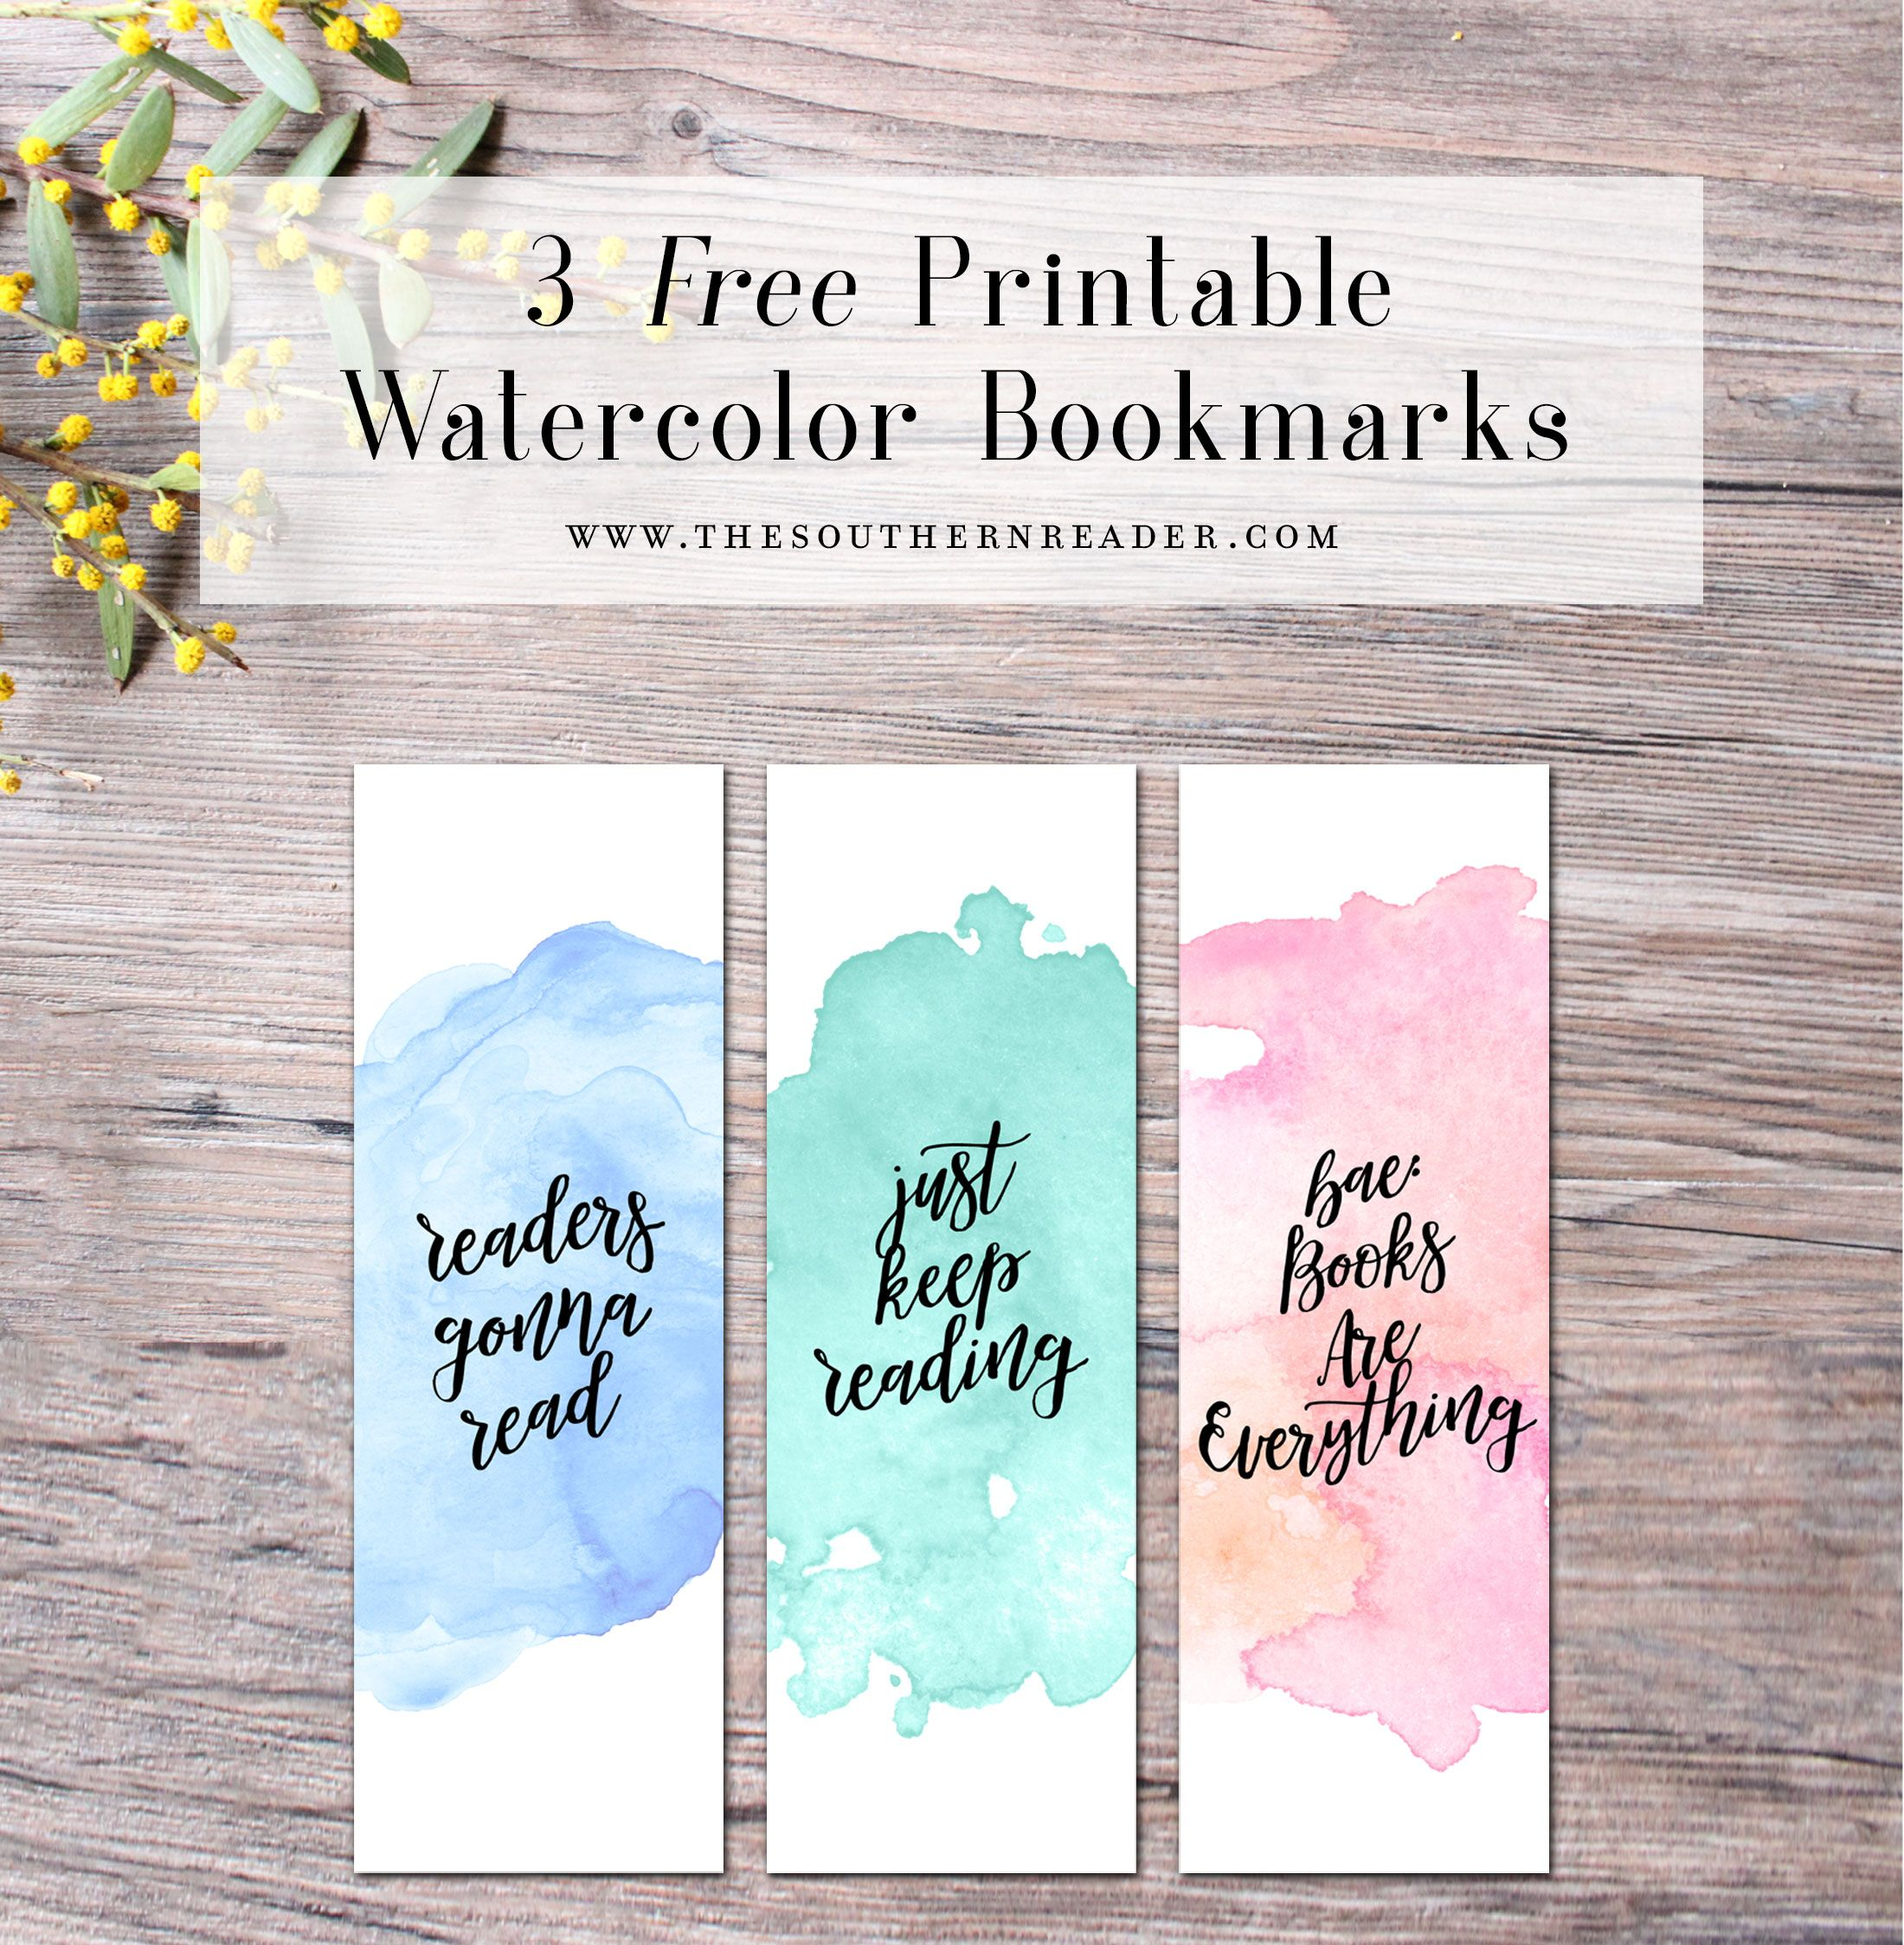 Free Printable Watercolor Bookmarks Watercolor Bookmarks Free